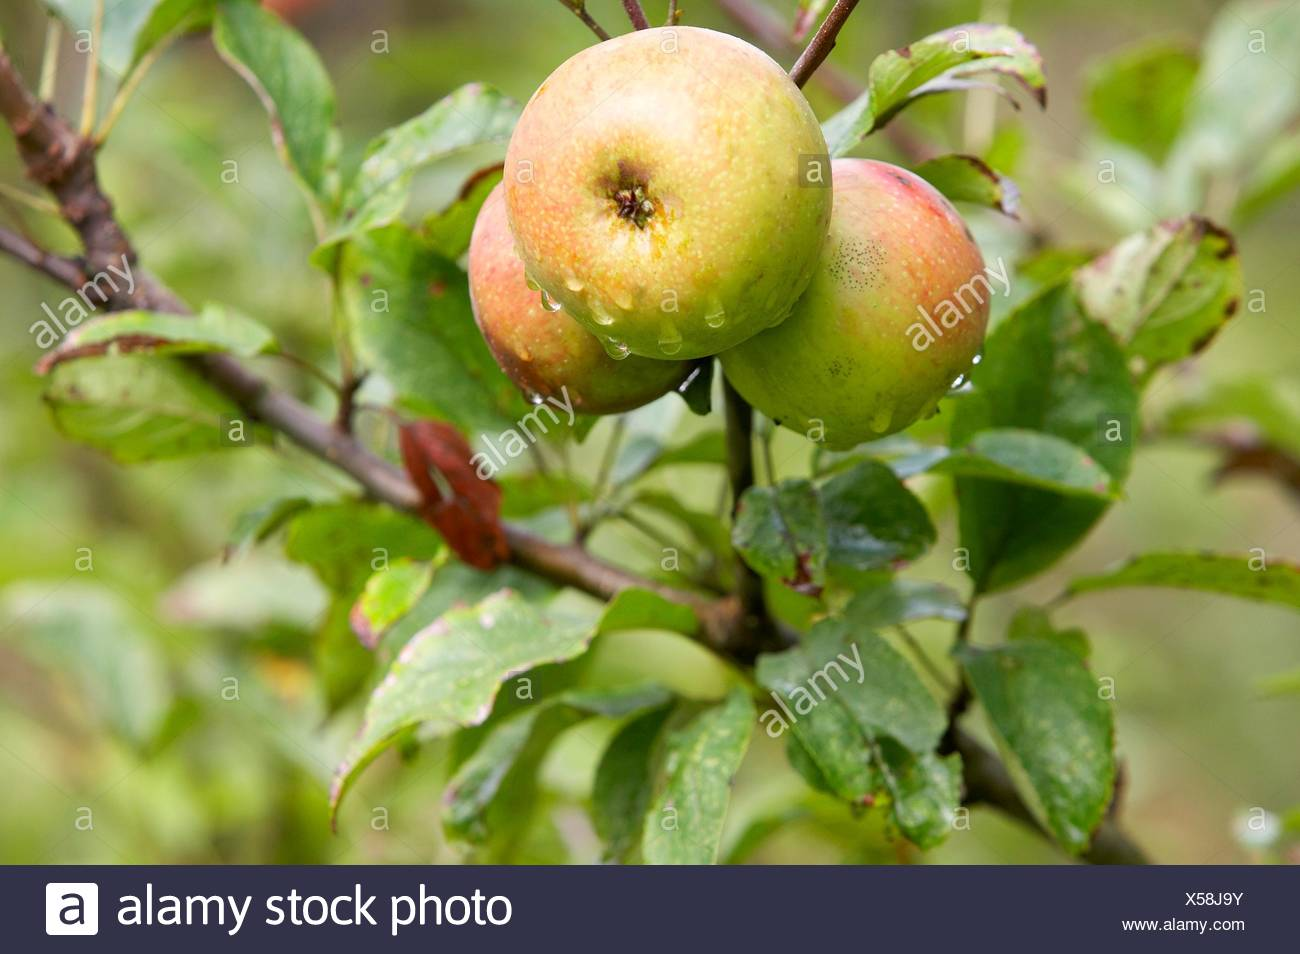 Reineta apples, Basque Country, Spain - Stock Image